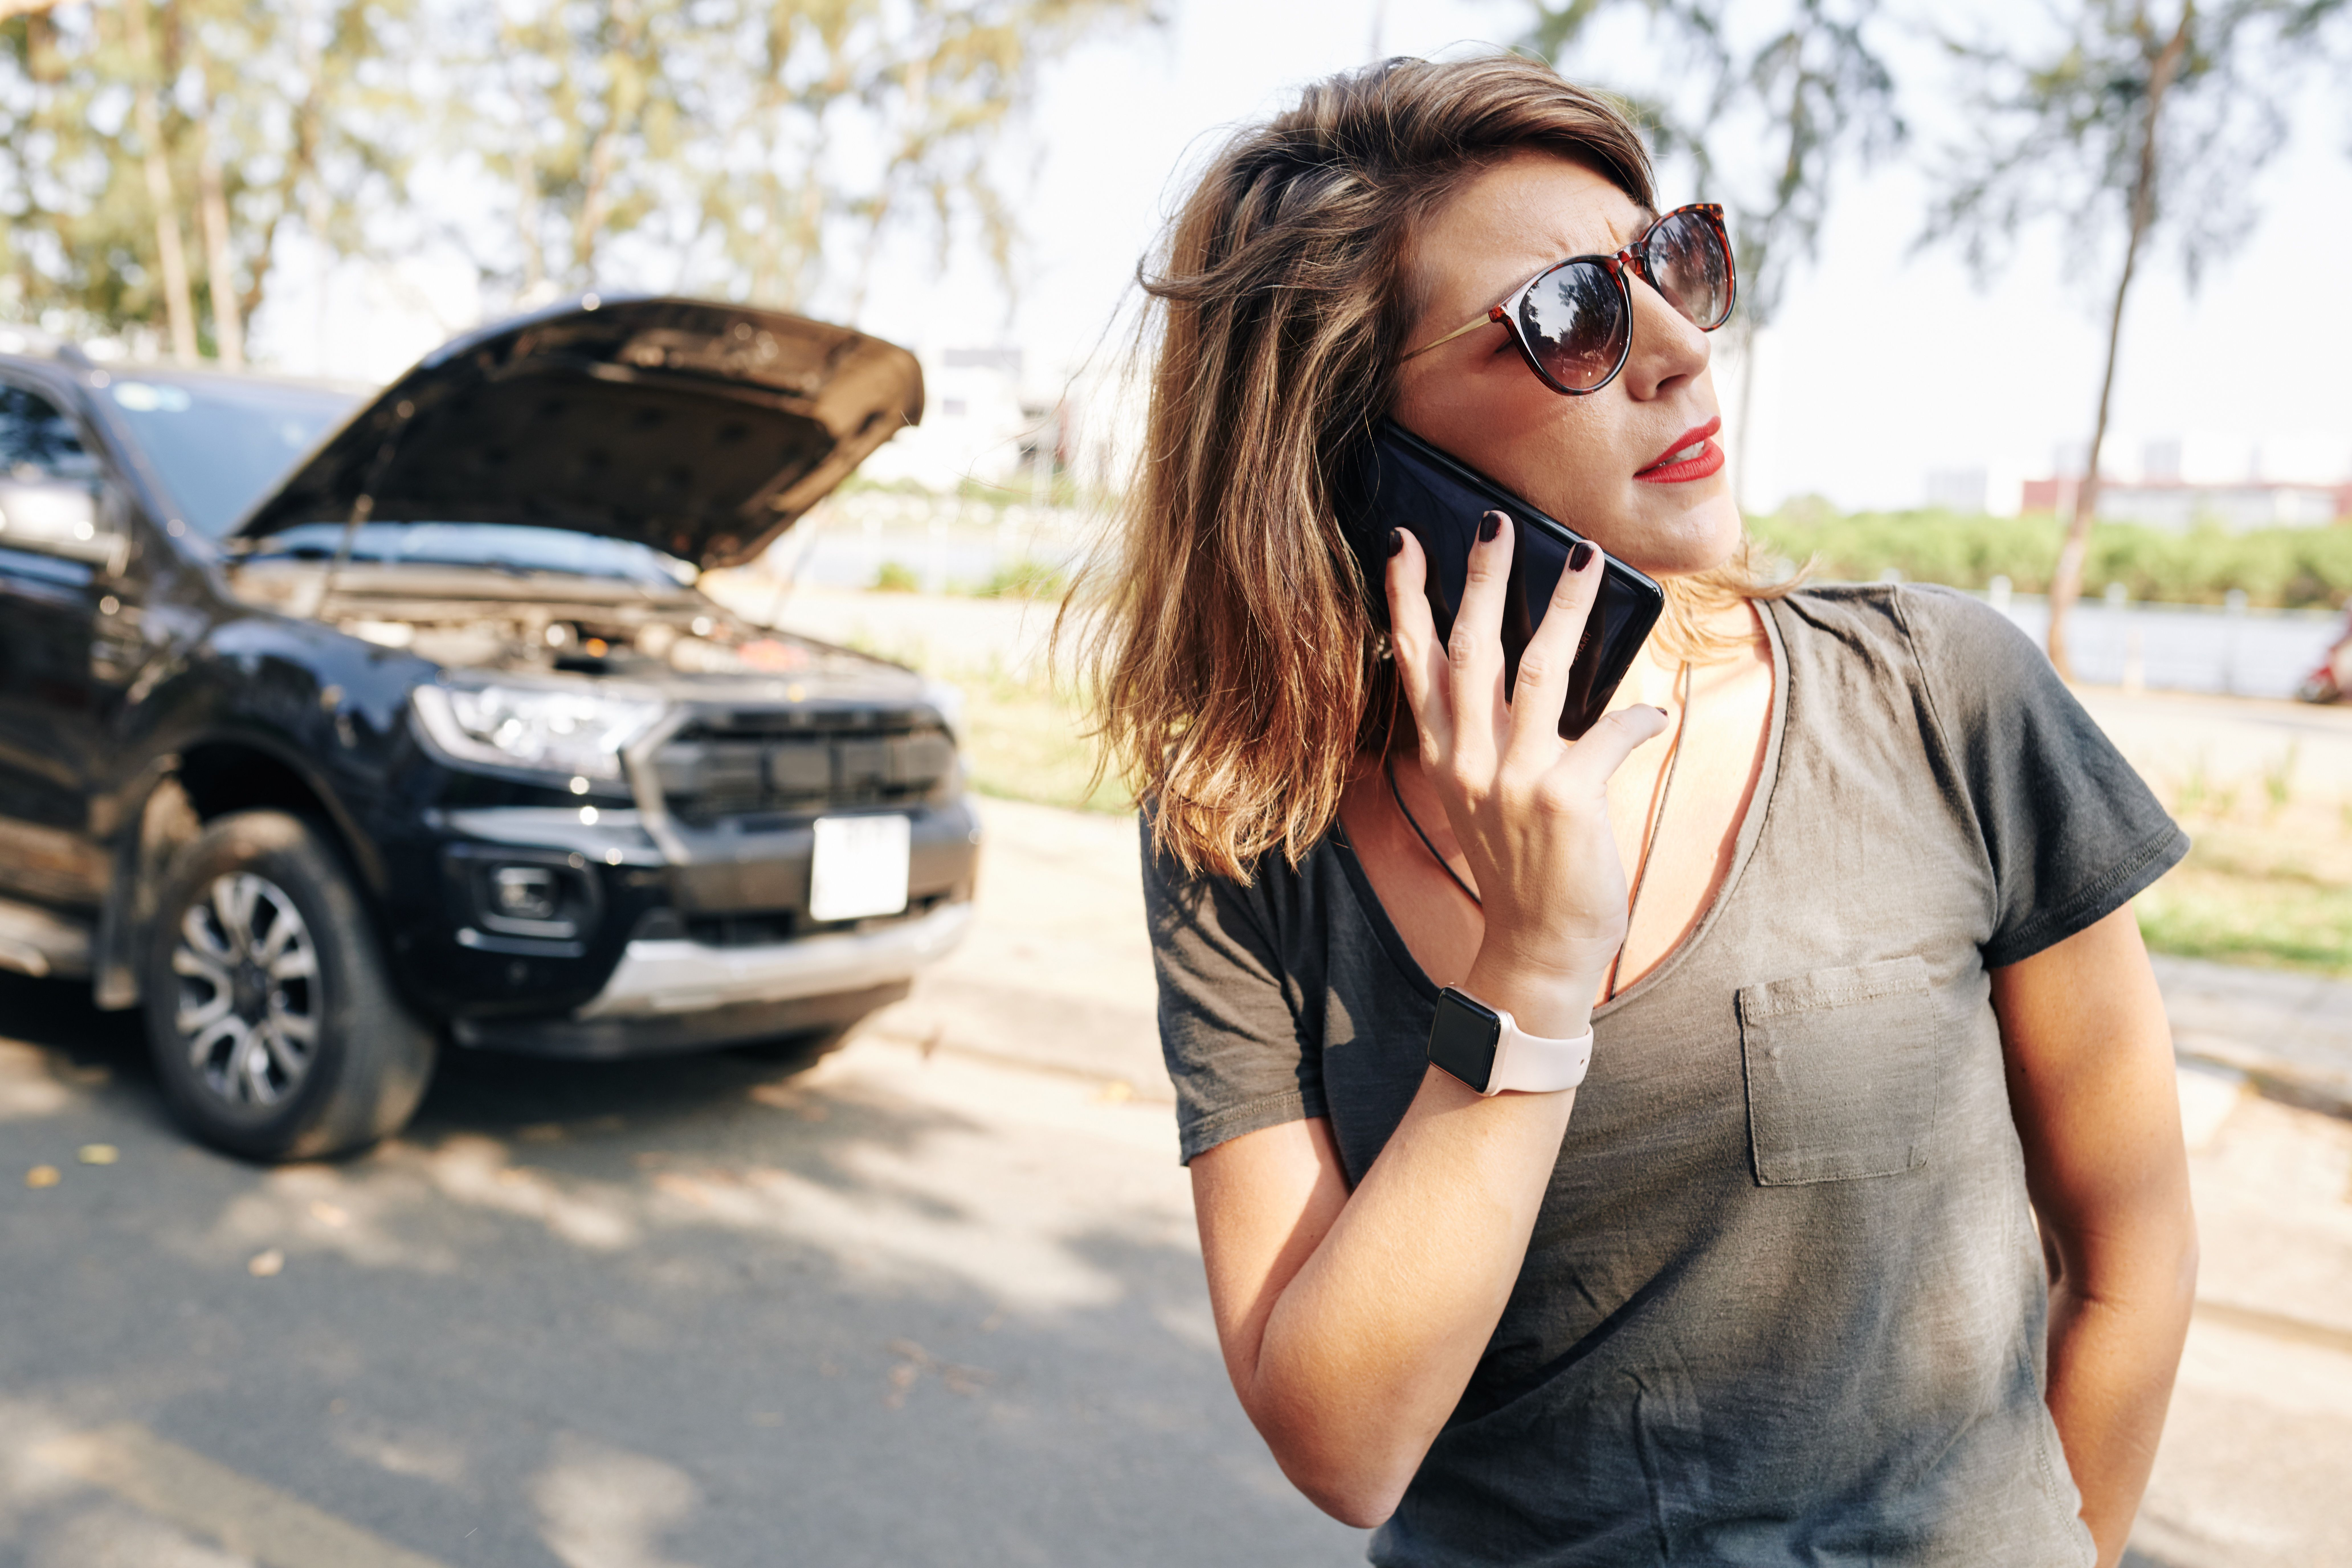 A woman on the phone after car breakdown